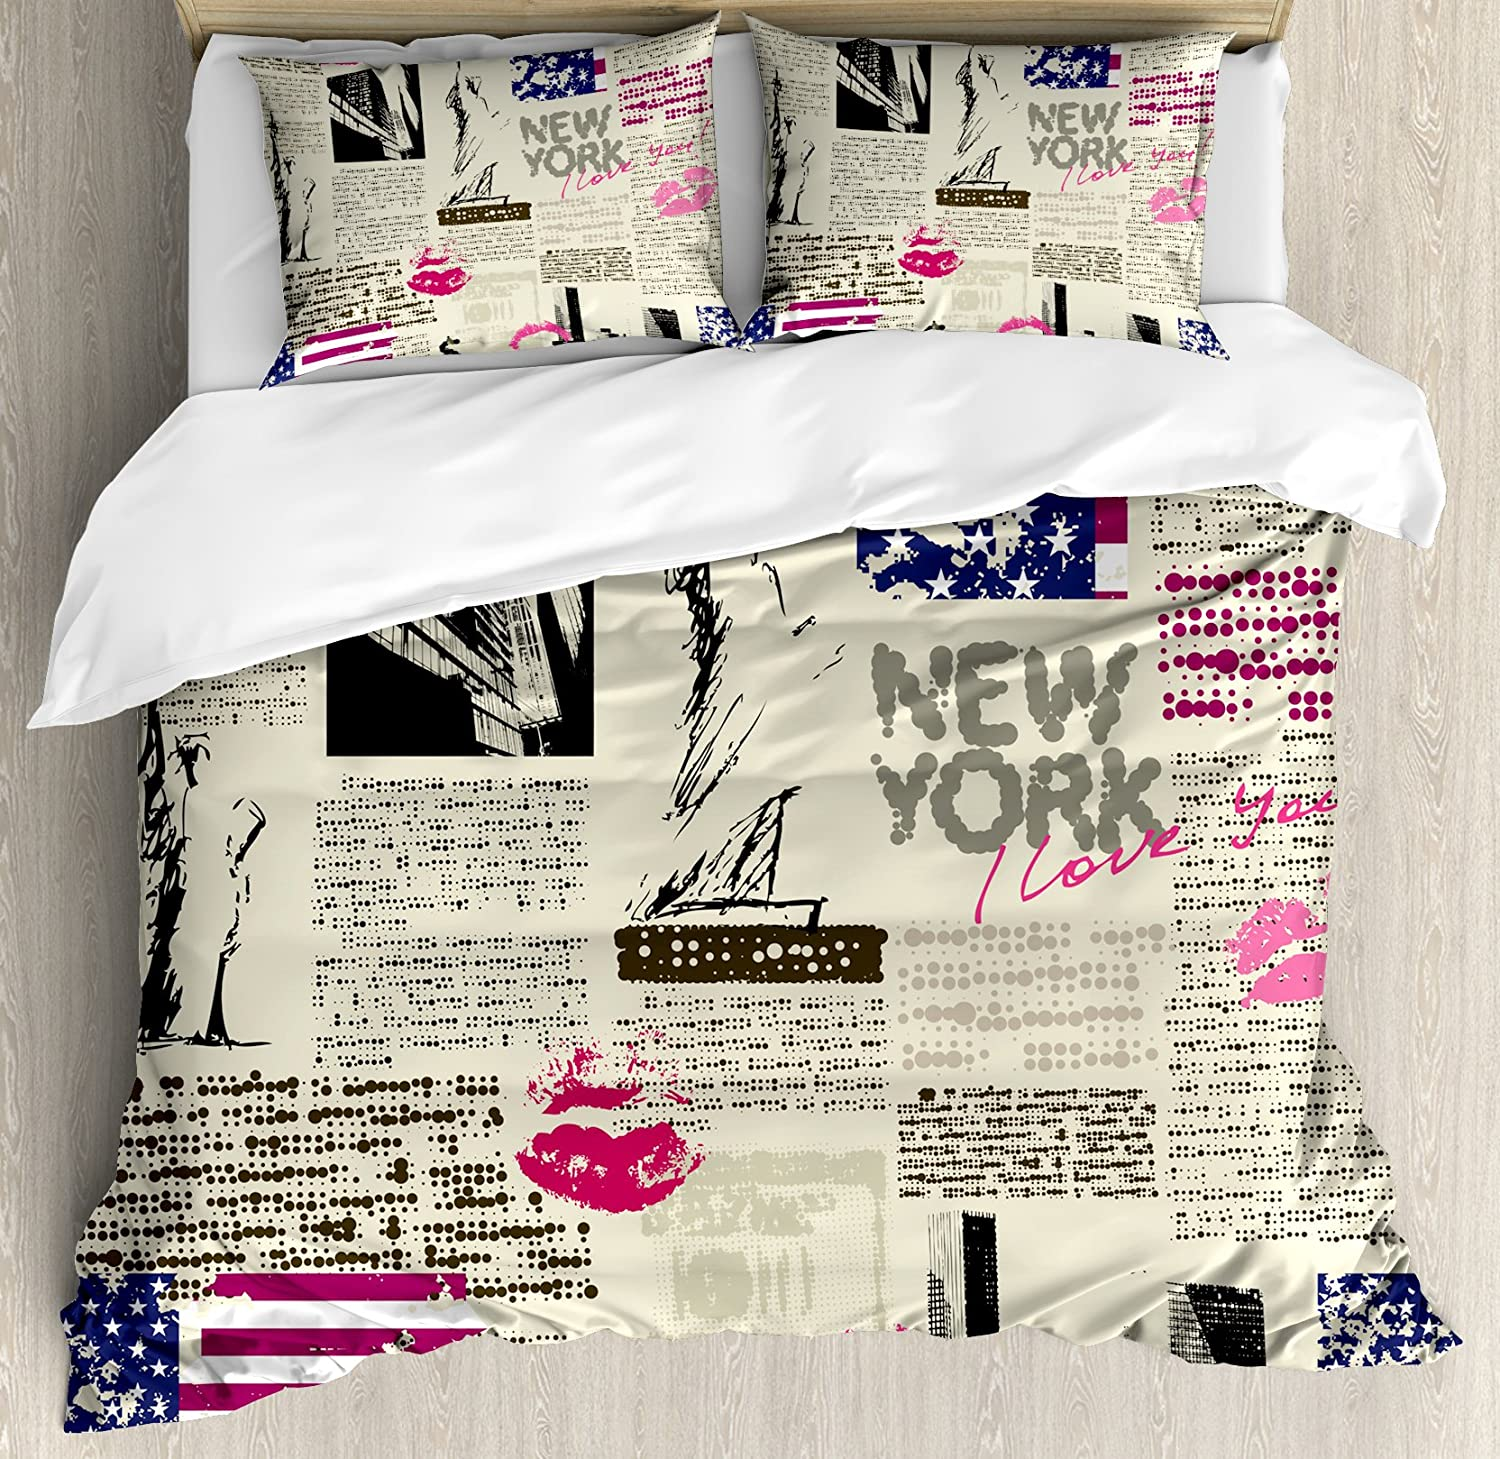 Ambesonne United States Duvet Cover Set Queen Size, Newspaper New York with Sketchy Statue of Liberty and Texts Lipstick Vintage, Decorative 3 Piece Bedding Set with 2 Pillow Shams, Multicolor